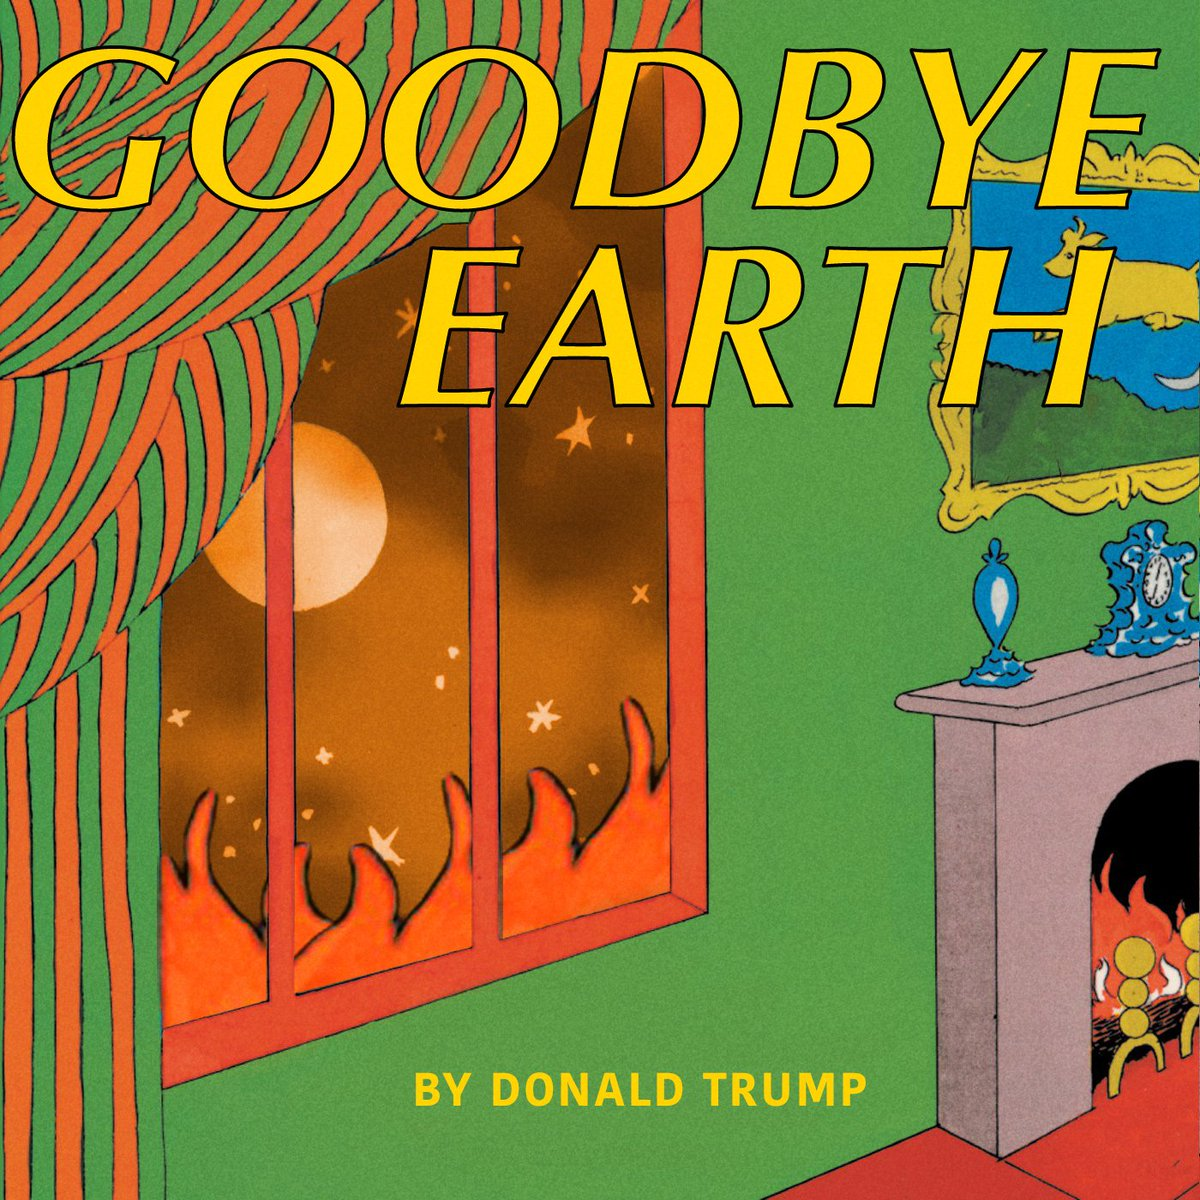 Finally, a children's book for our new climate policy. https://t.co/uBnbH4HcUR